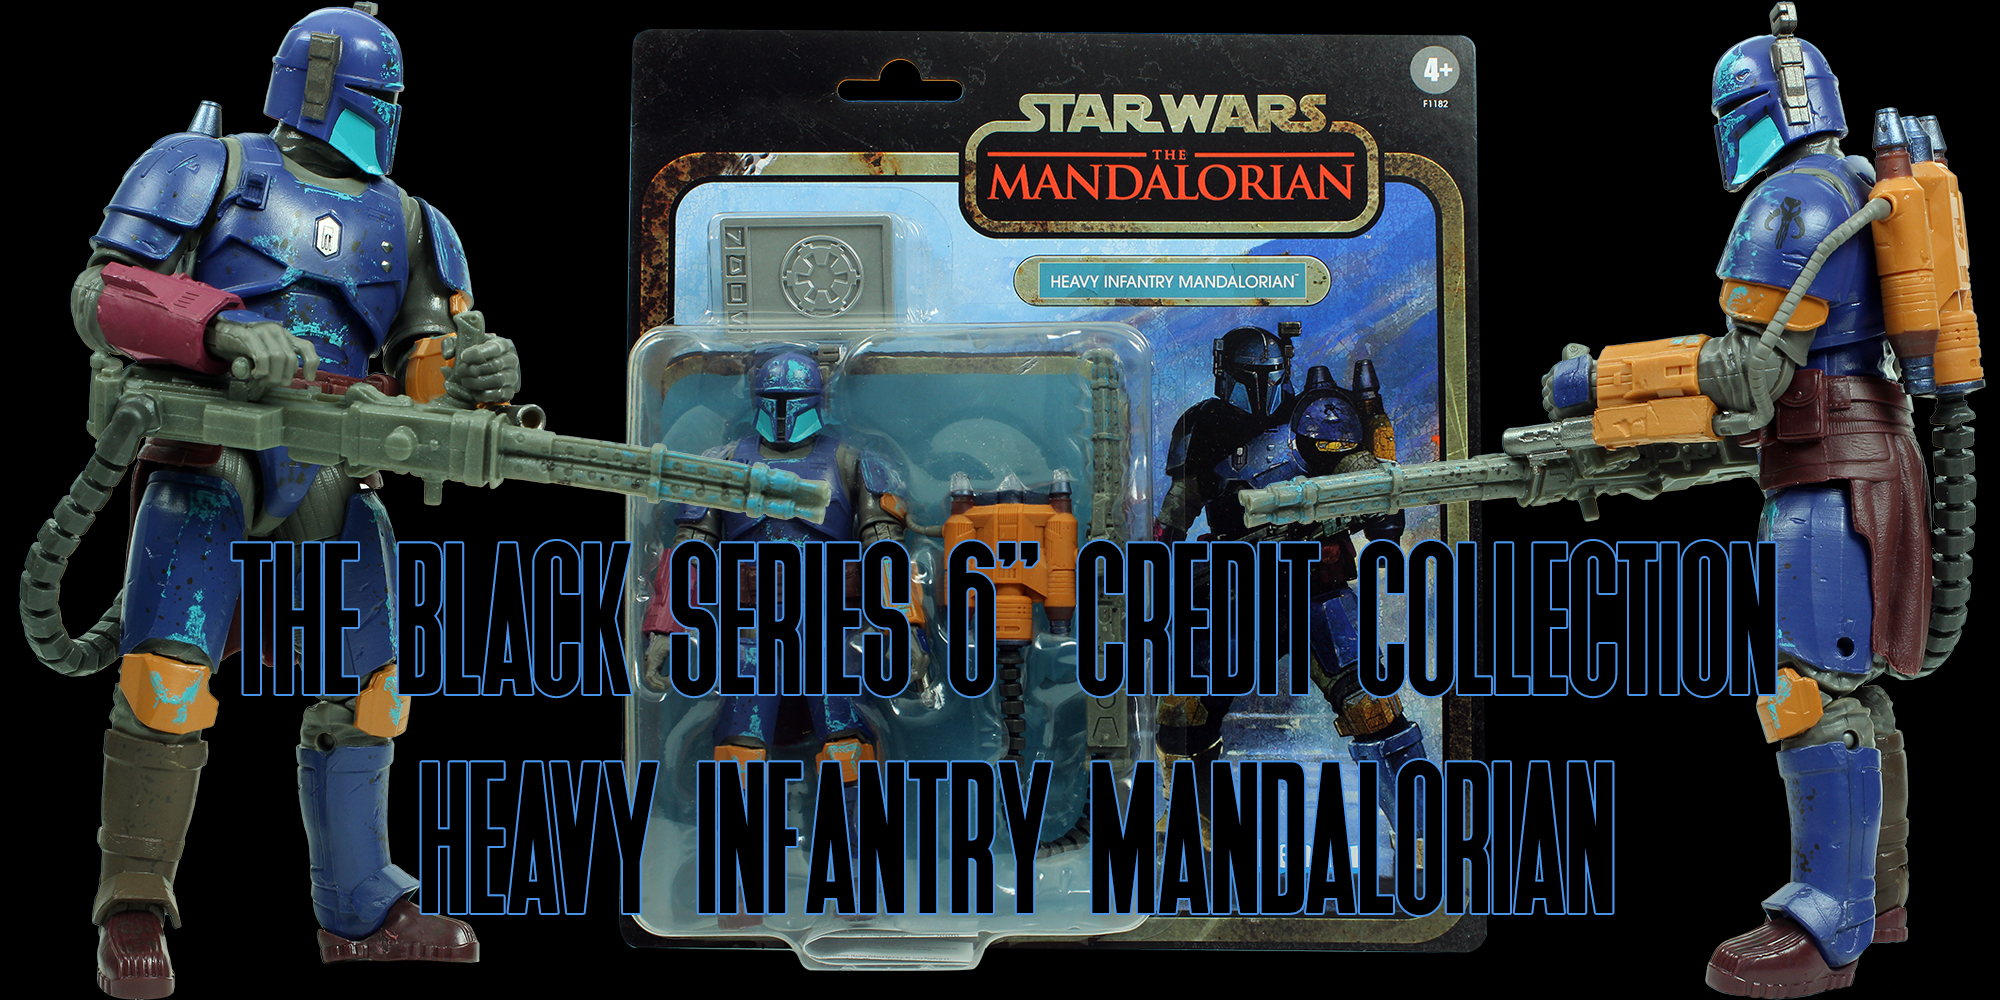 Black Series Heavy Infantry Mandalorian Credit Collection